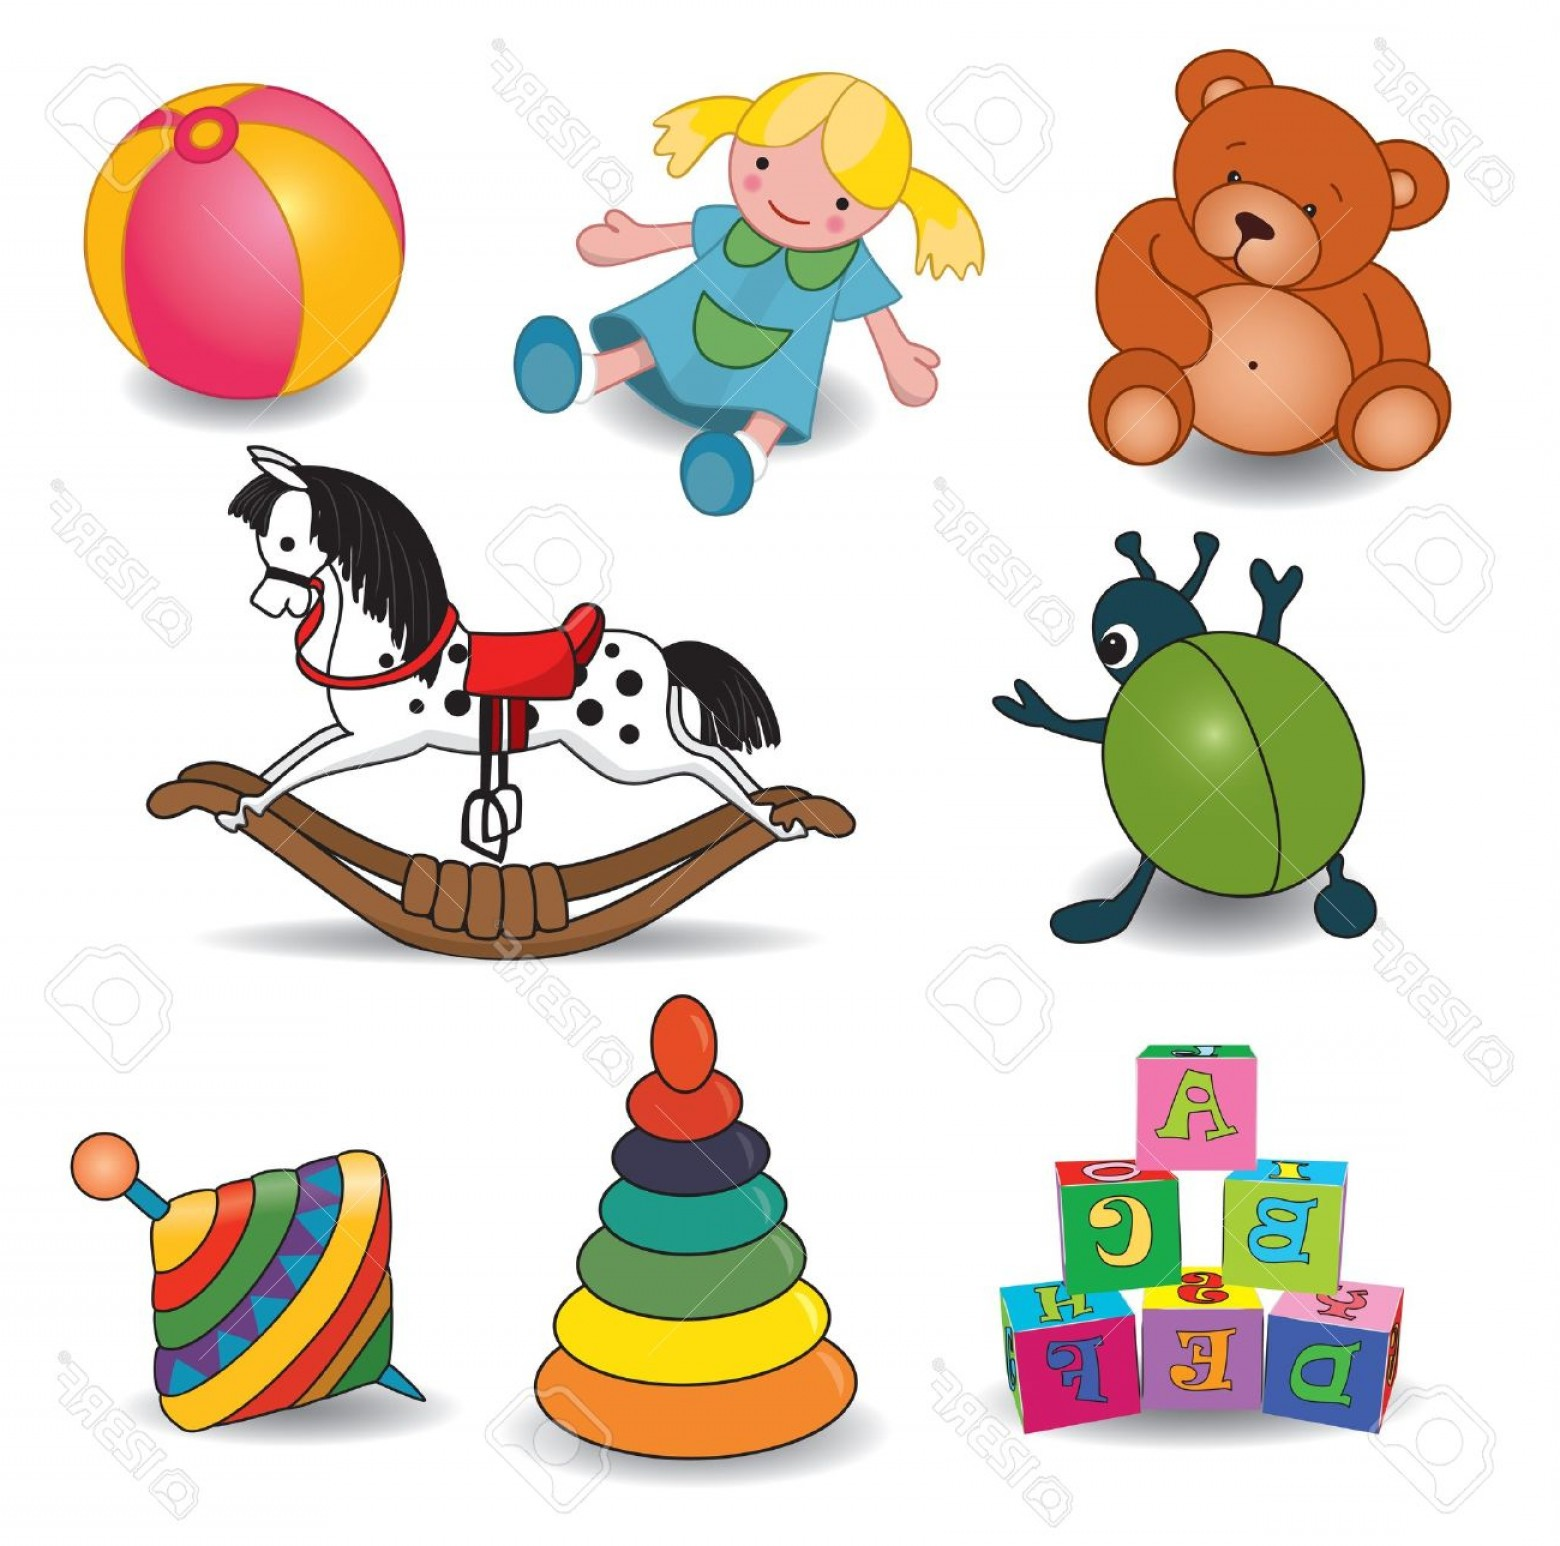 Baby Toy Vector: Photoset Of Baby S Toys Elements Illustration